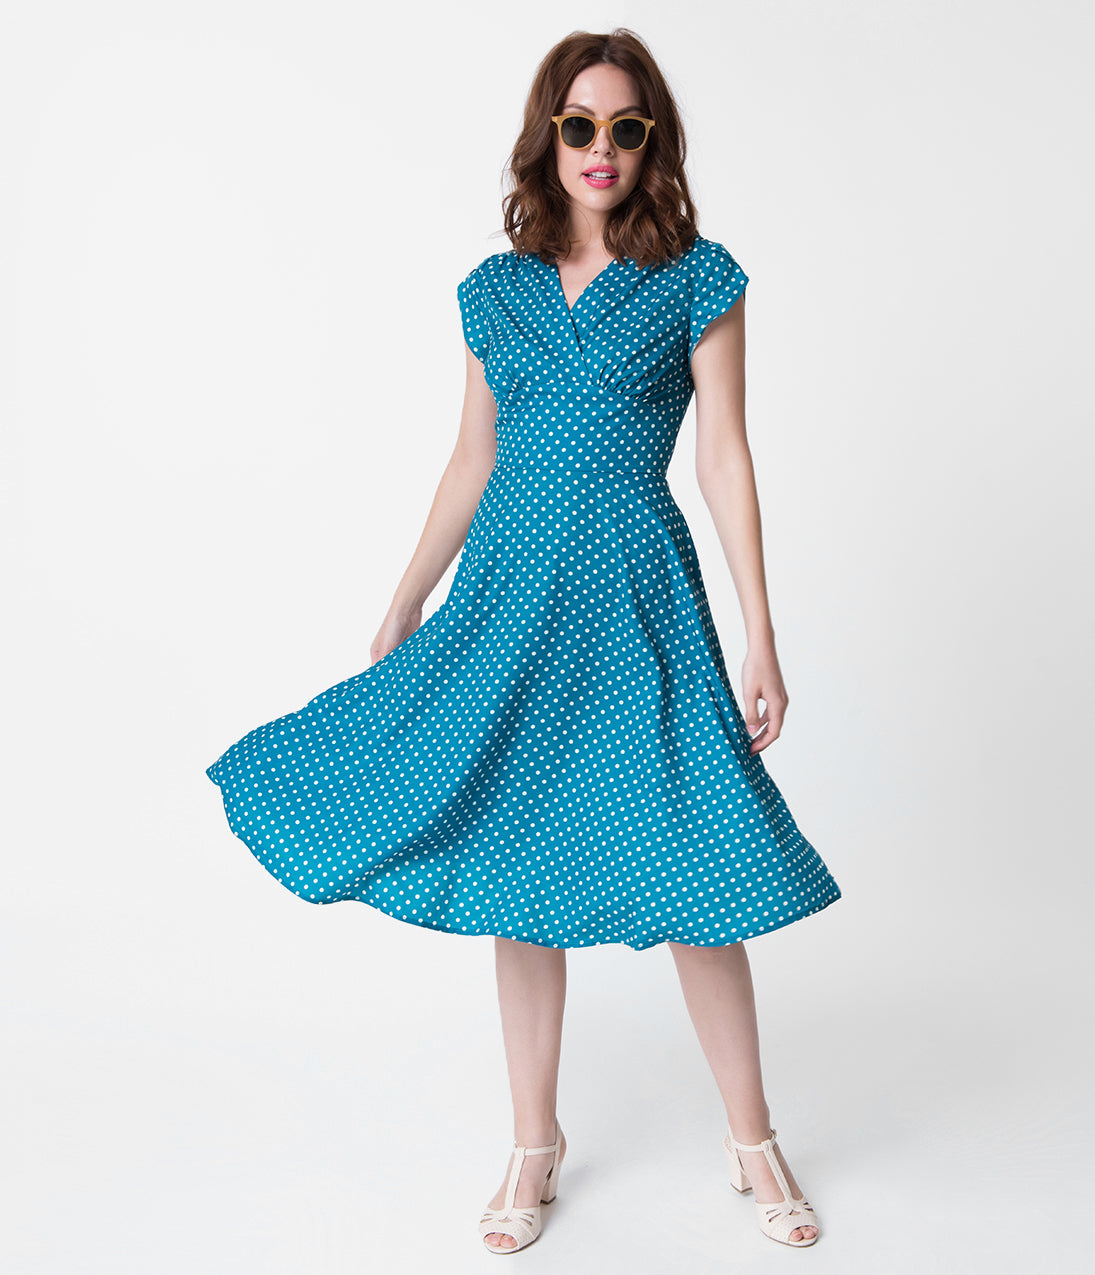 Vintage Polka Dotted Dresses: Swing, Flair, A-Line, Pencil – Unique ...